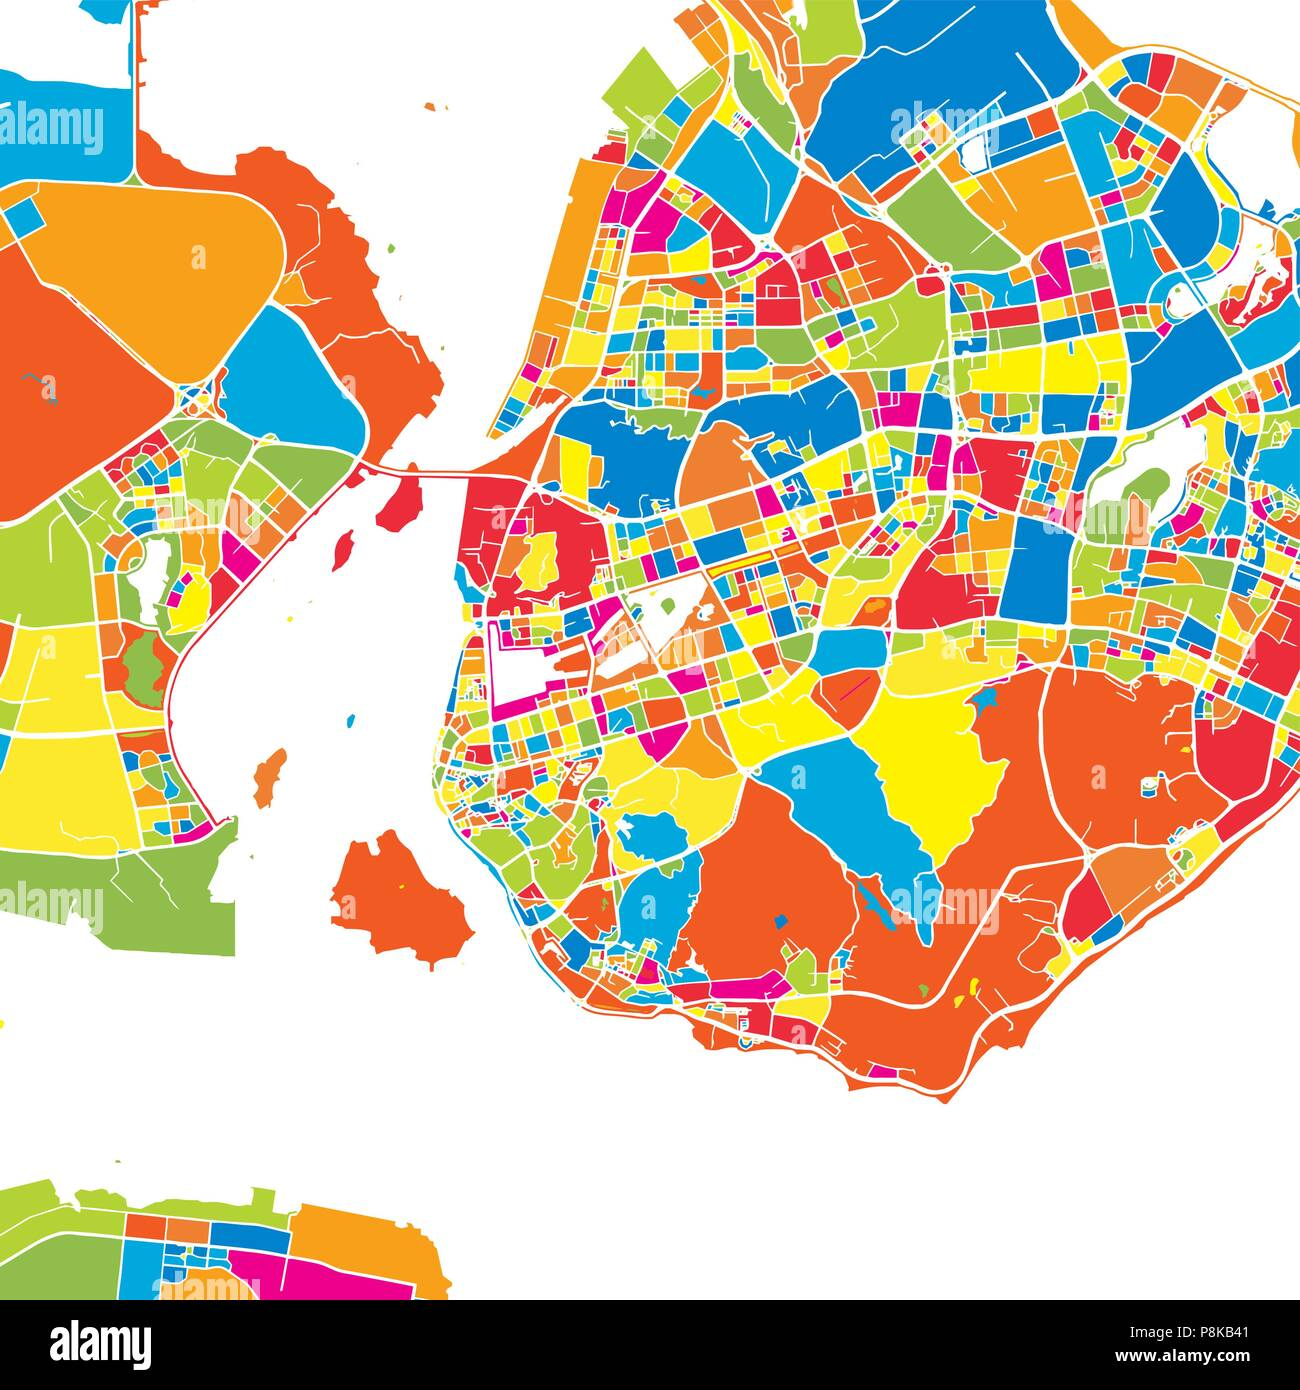 Xiamen china colorful vector map white streets railways and xiamen china colorful vector map white streets railways and water bright colored landmark shapes art print pattern gumiabroncs Gallery